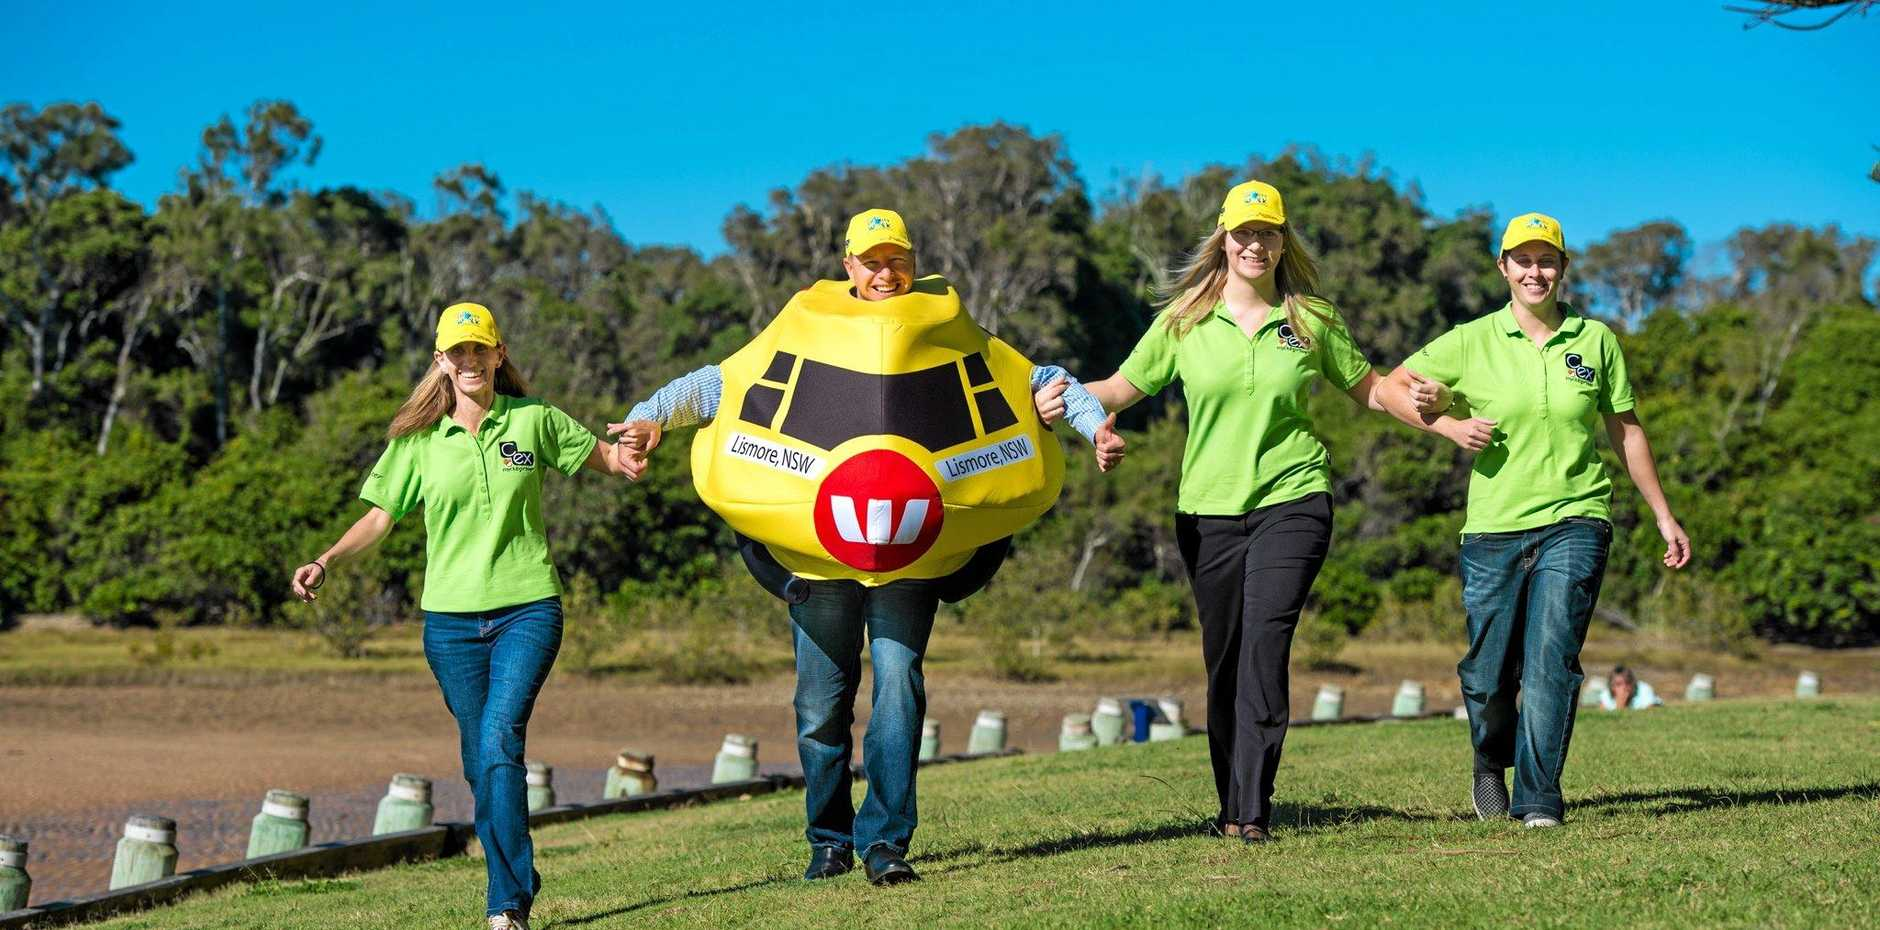 promo cancer walk that will start at Moonee creek Reserve,Lto R: Coffs C.ex Coffs Coast Charity Walk crew Fiona Pike, Sarah Pryor and Jes King with Zeke Huish (Fundraising Manager) for the Westpac Life Saver Rescue Helicopter .Photo Trevor Veale / Coffs Coast Advocate